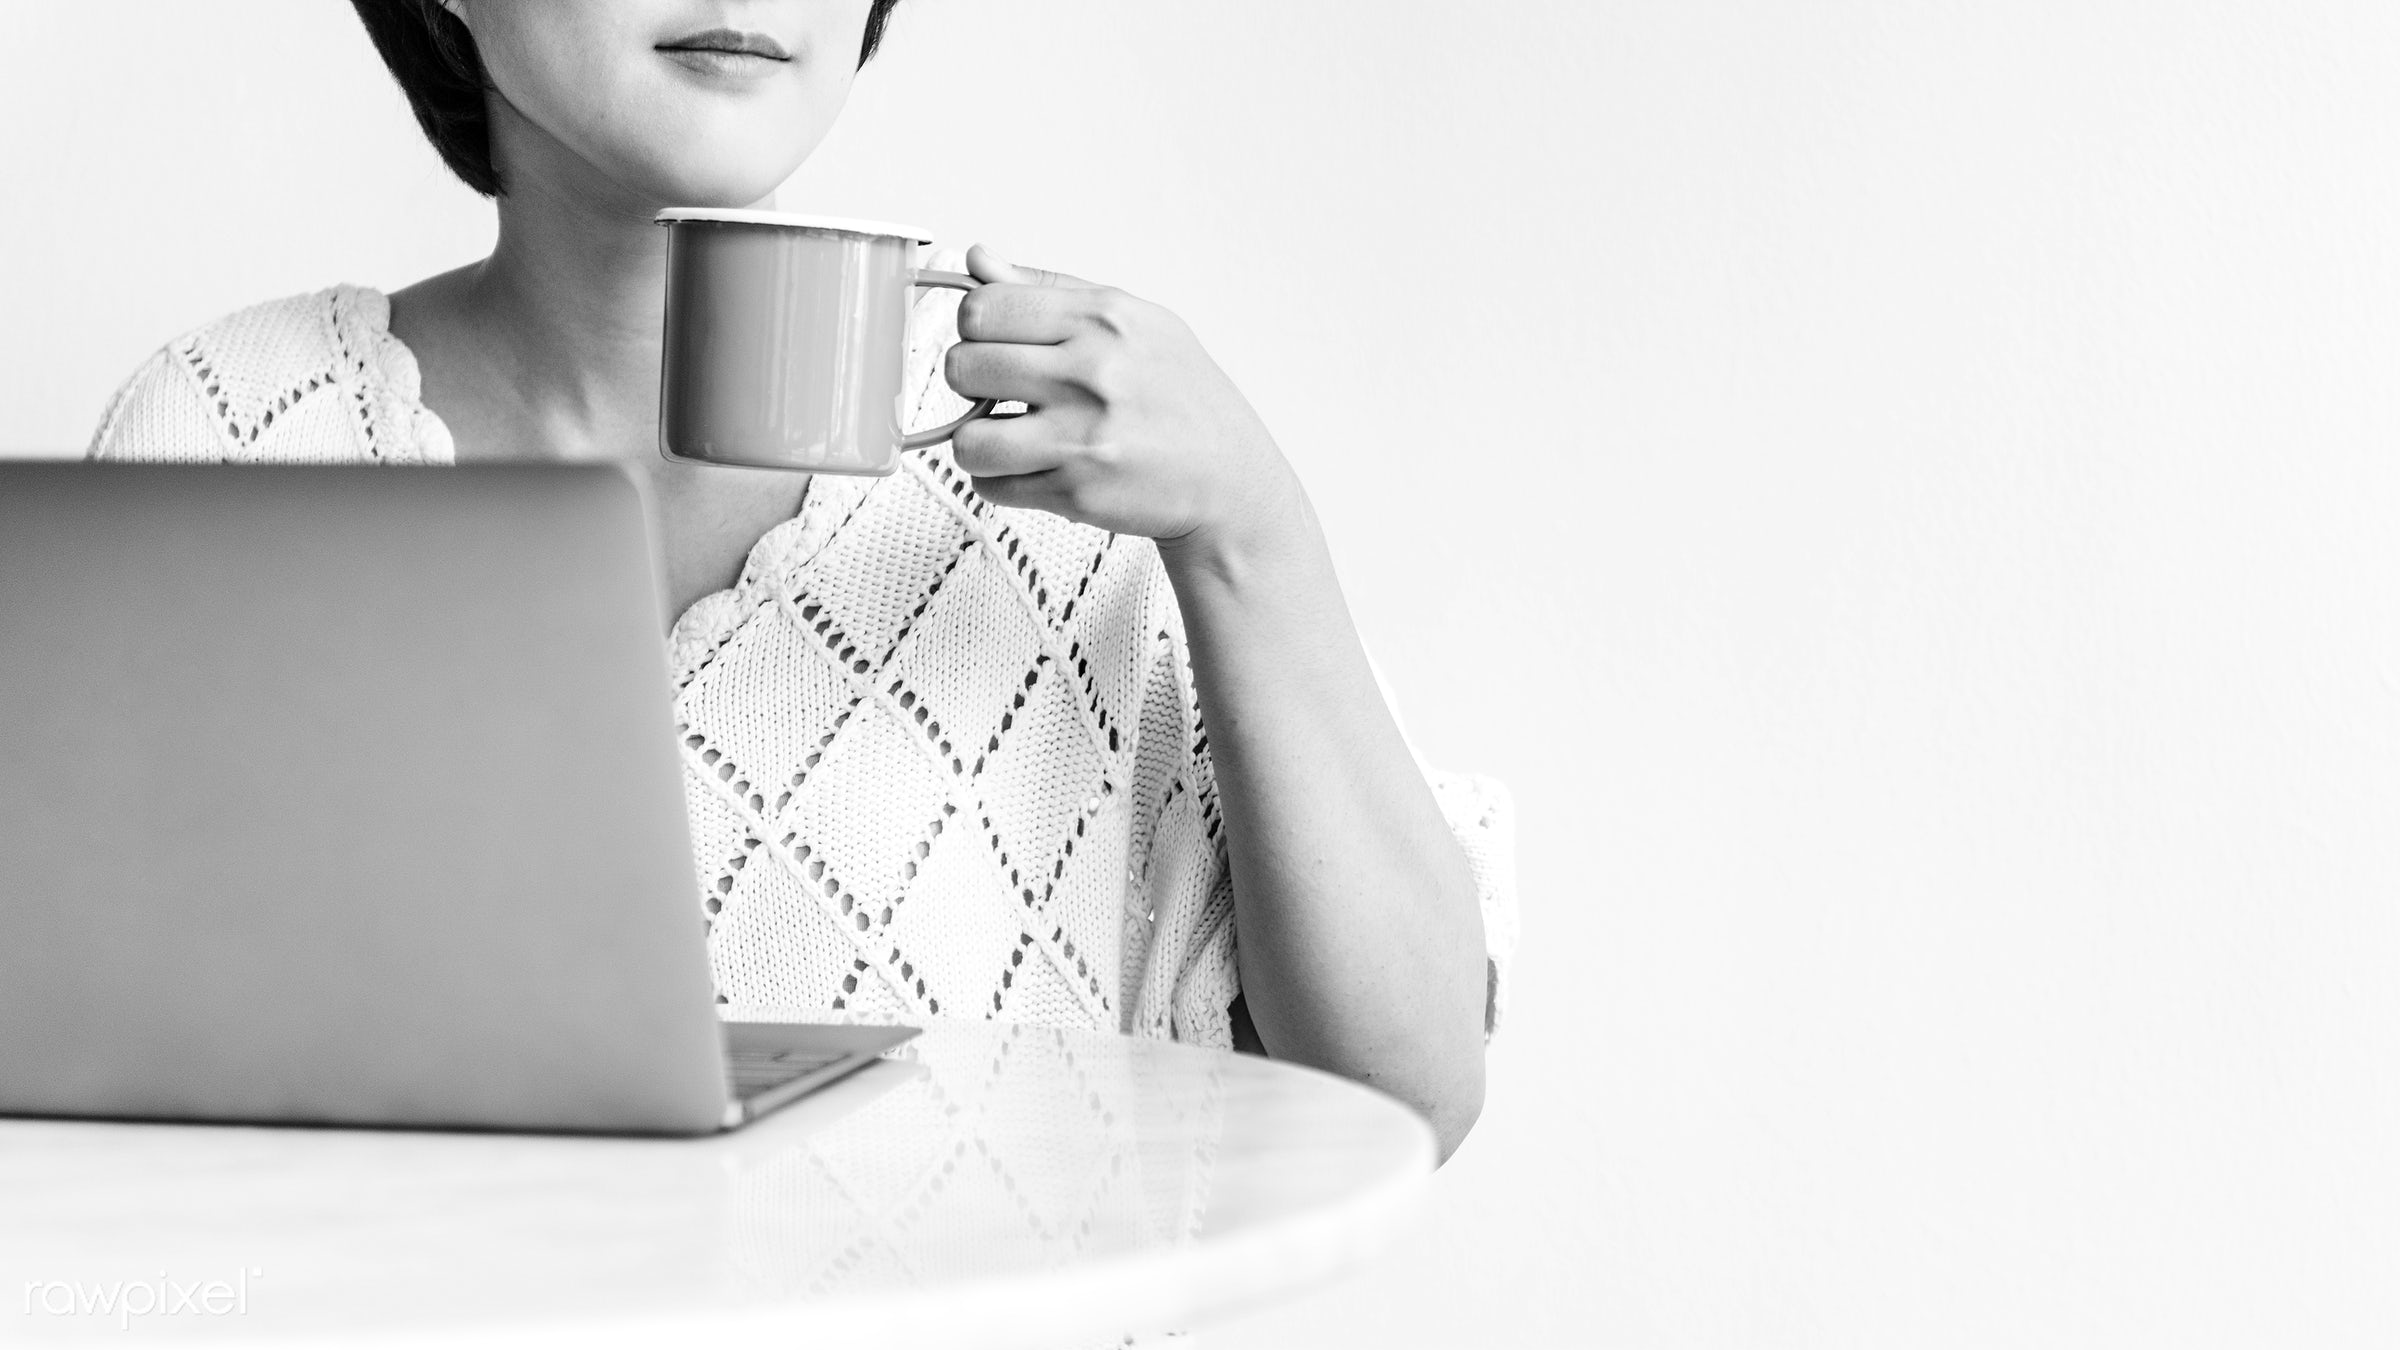 adult, alone, asian, asian ethnicity, browsing, cafe, casual, college, communication, connection, digital device, drinking,...